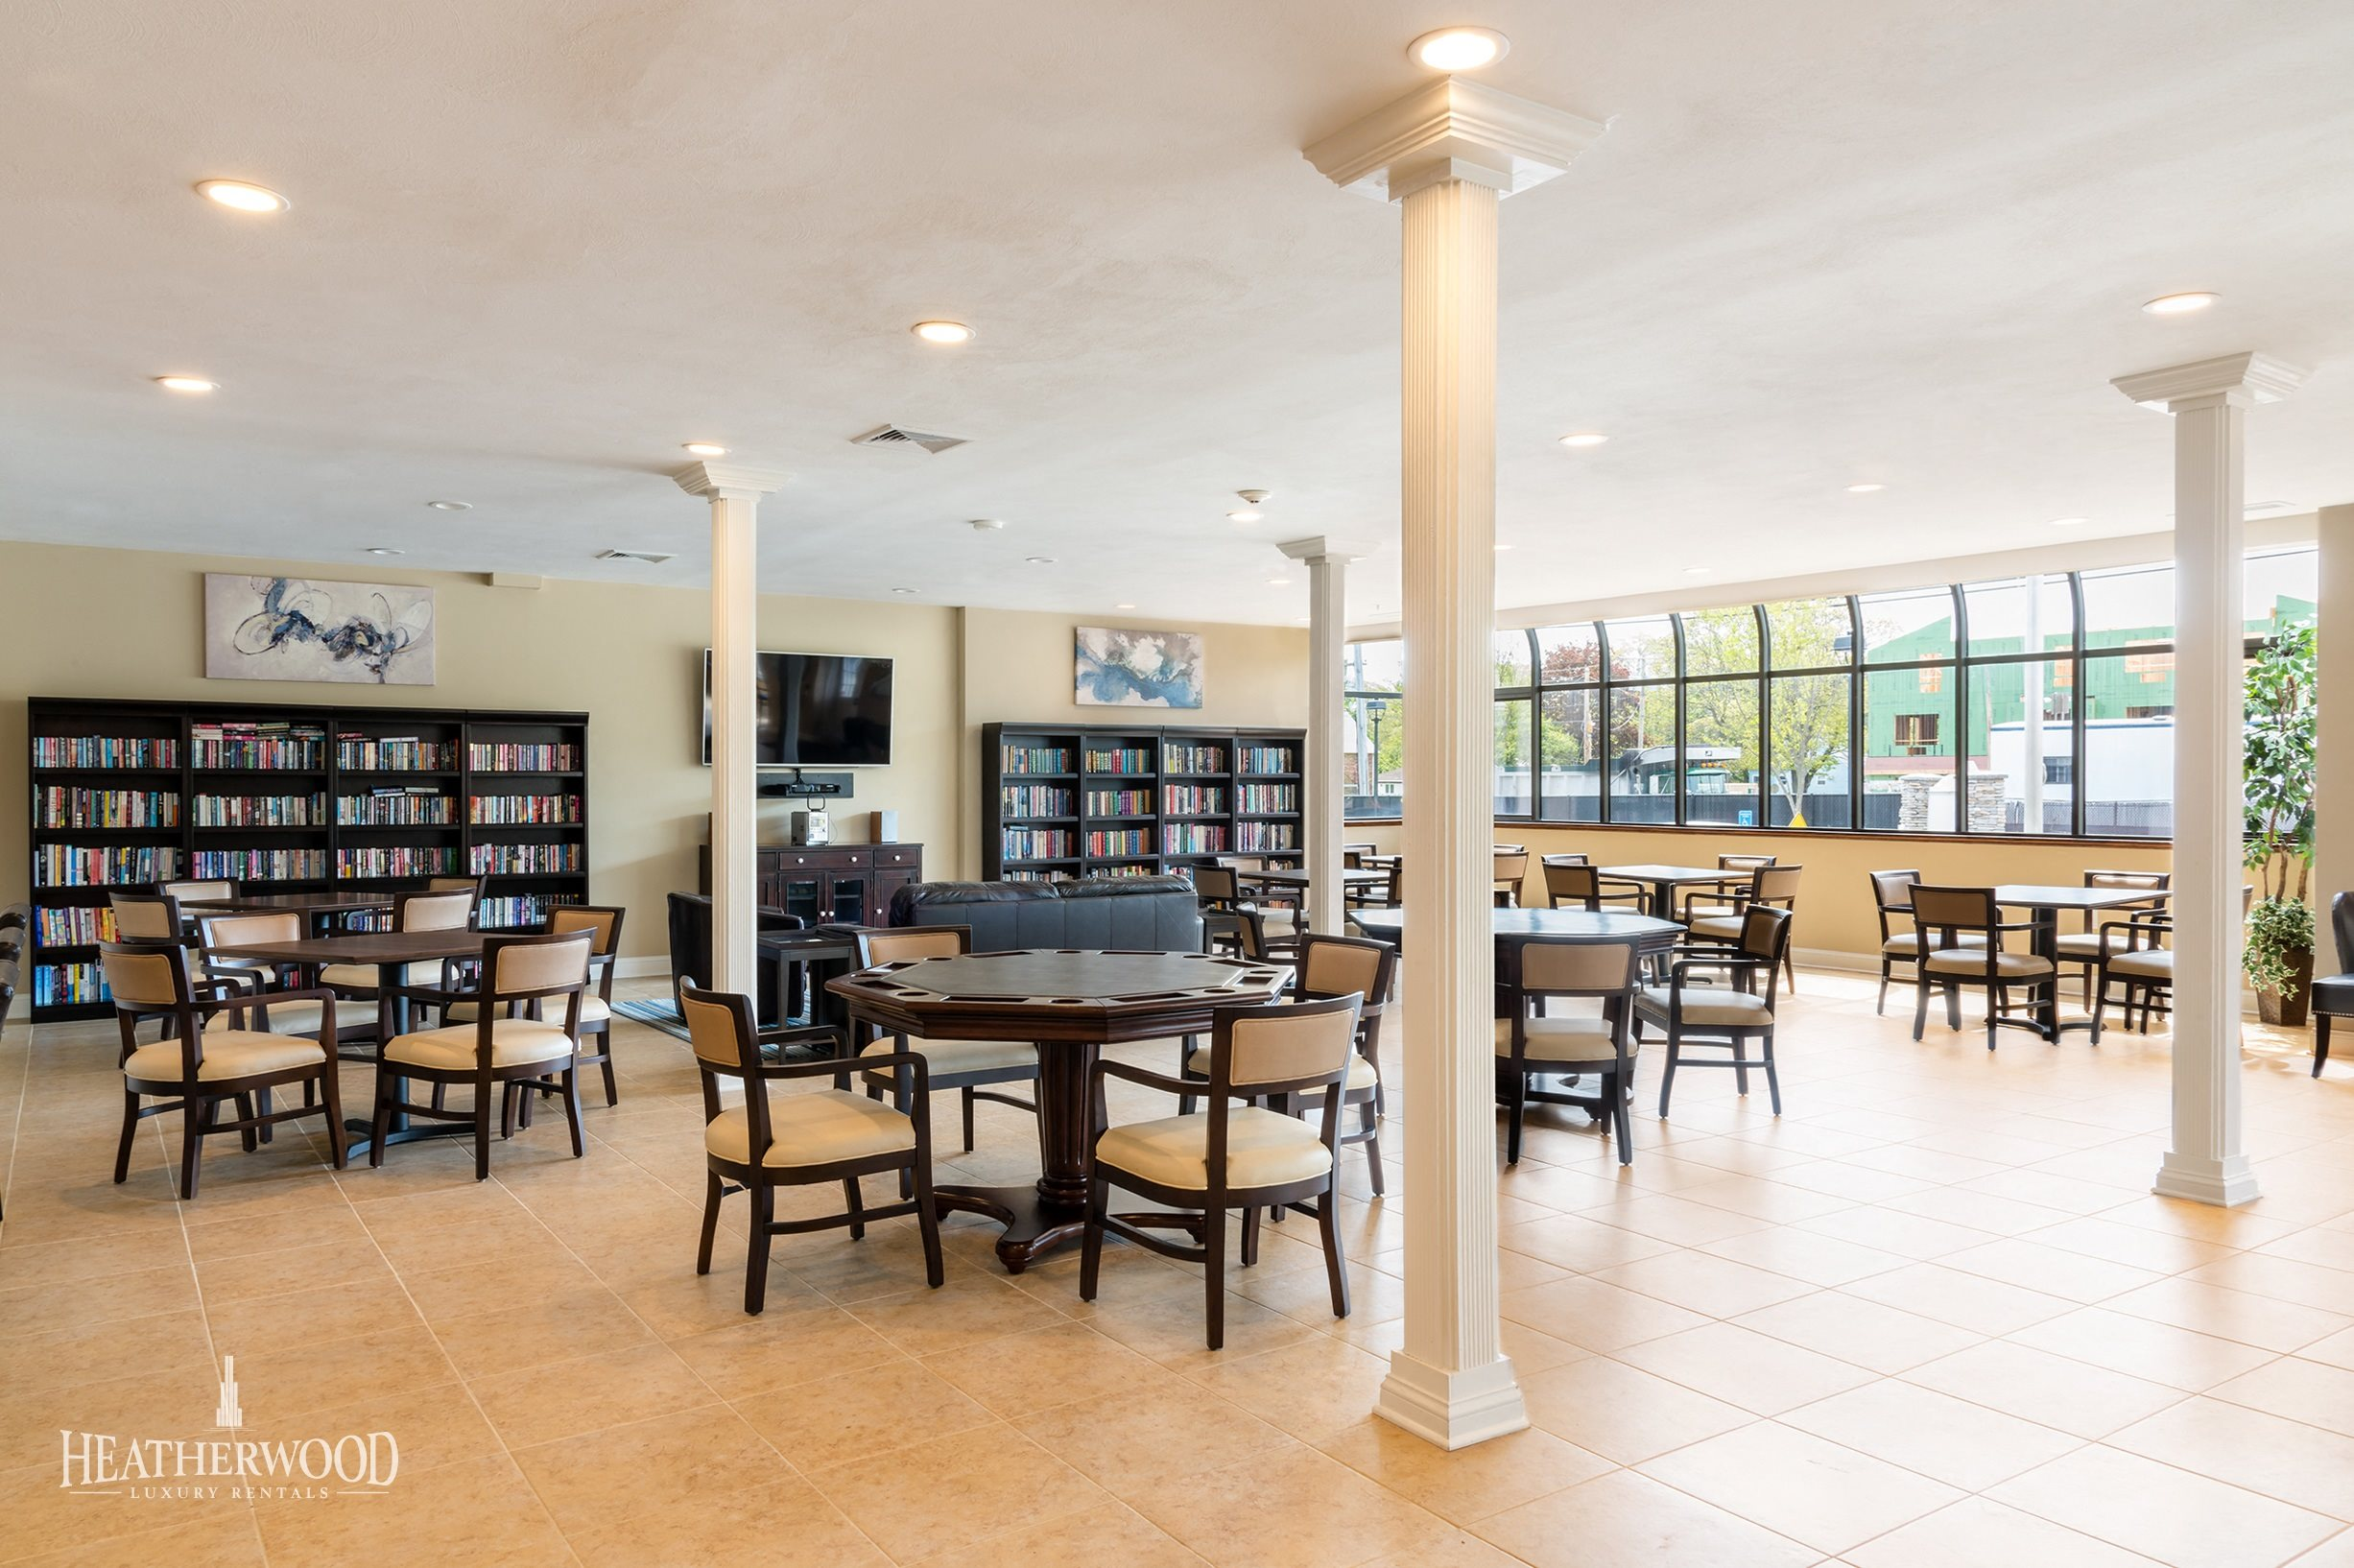 Community Center and Lounge Area, Card Tables, TV